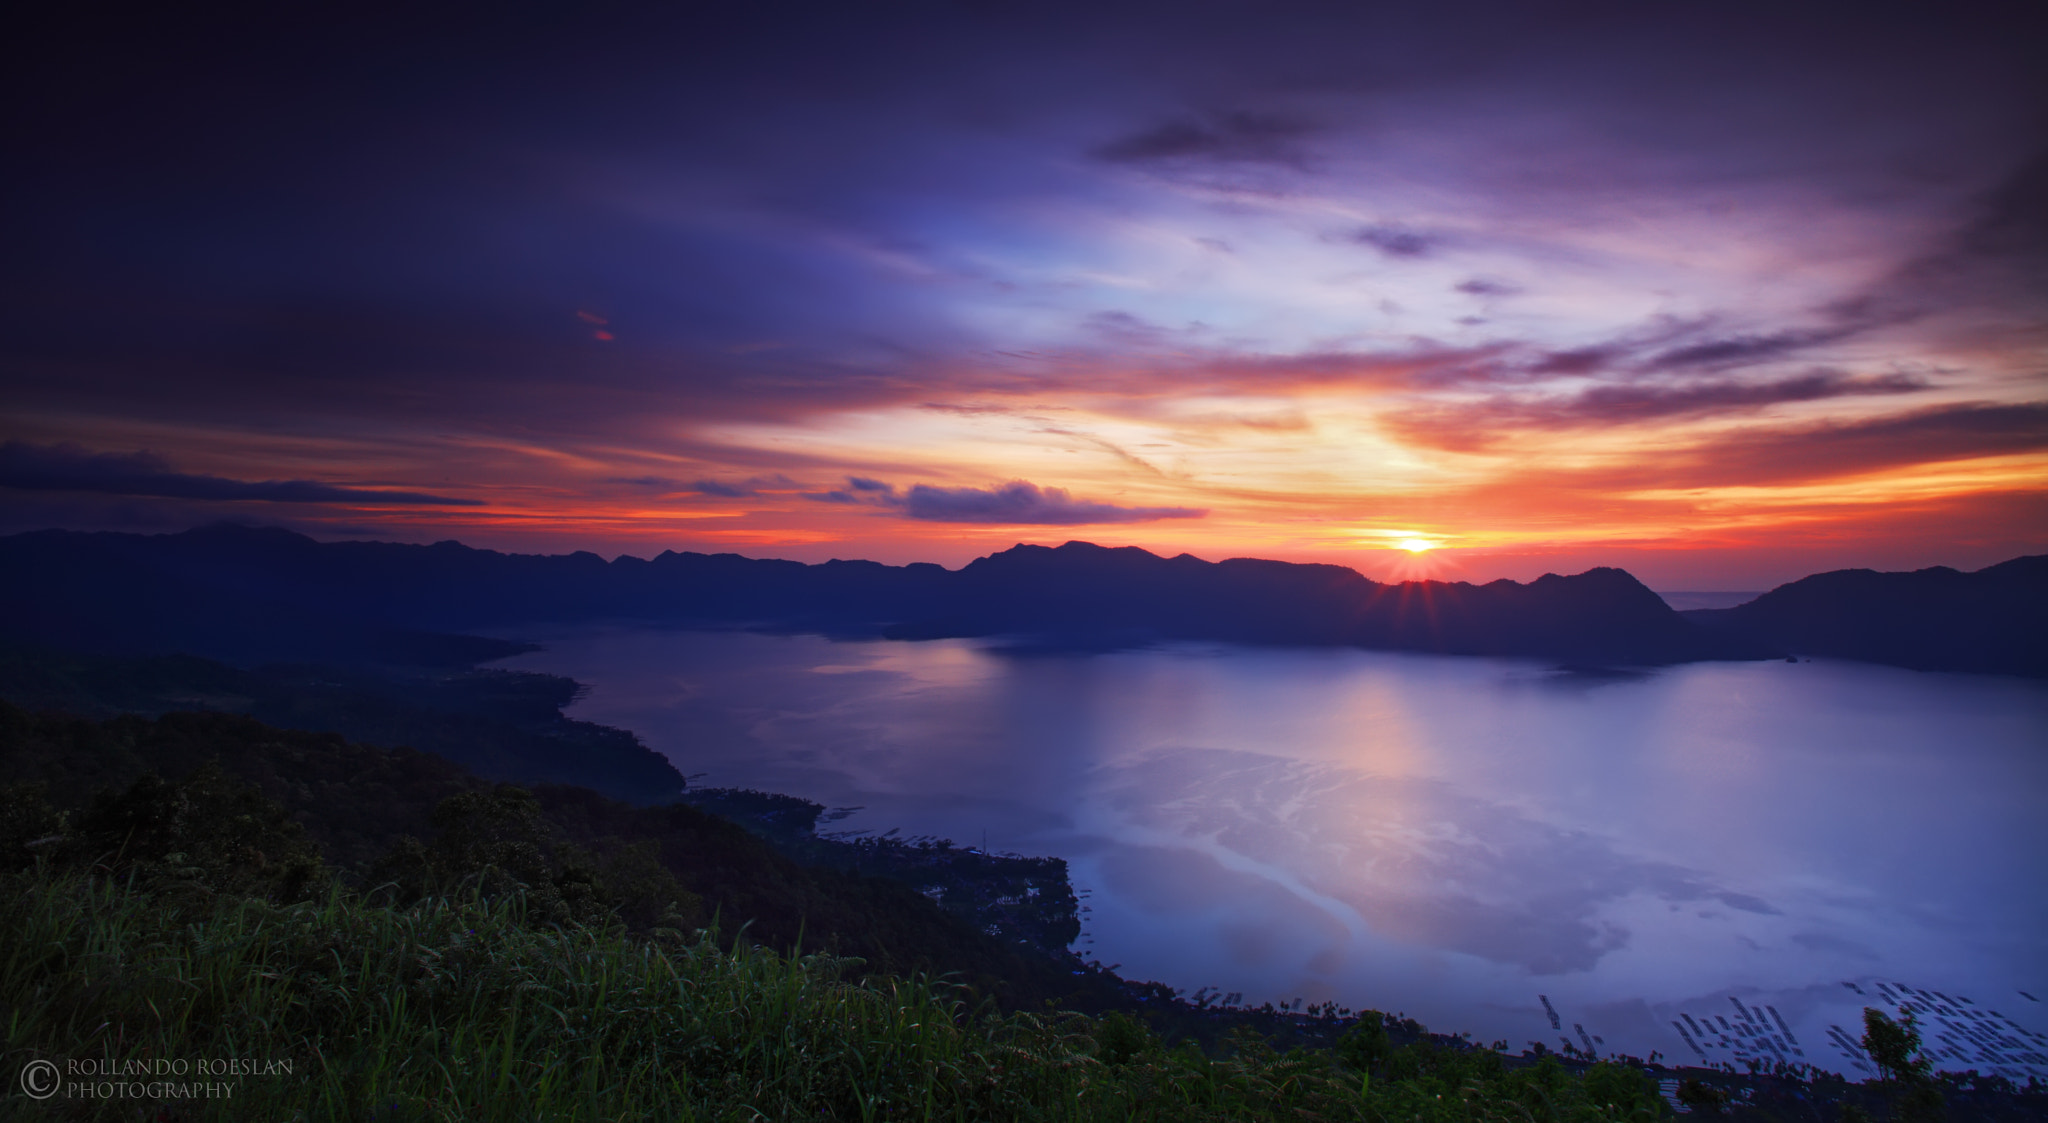 Photograph Sunset over Maninjau by Rollando  Roeslan on 500px